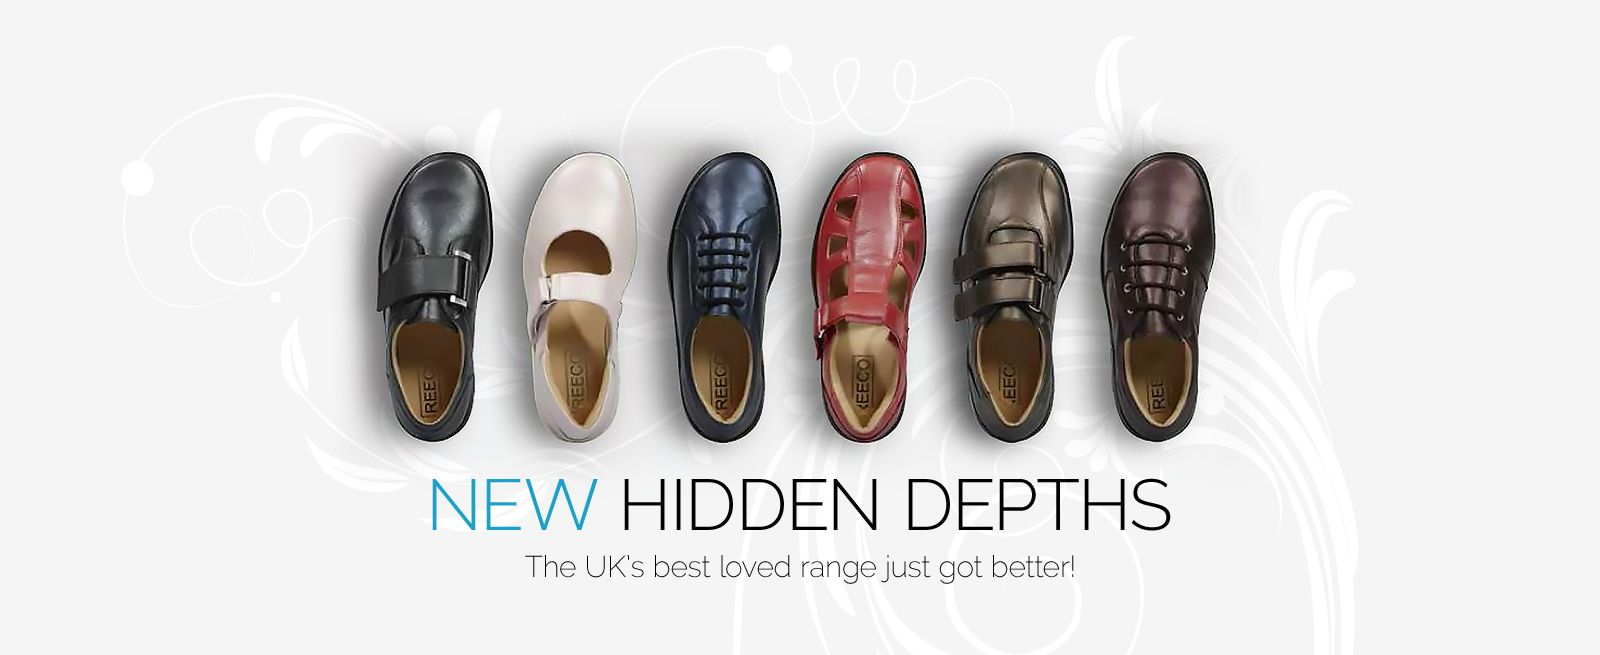 Orthopedic And Diabetic Footwear Https Www Reedmedical Co Uk